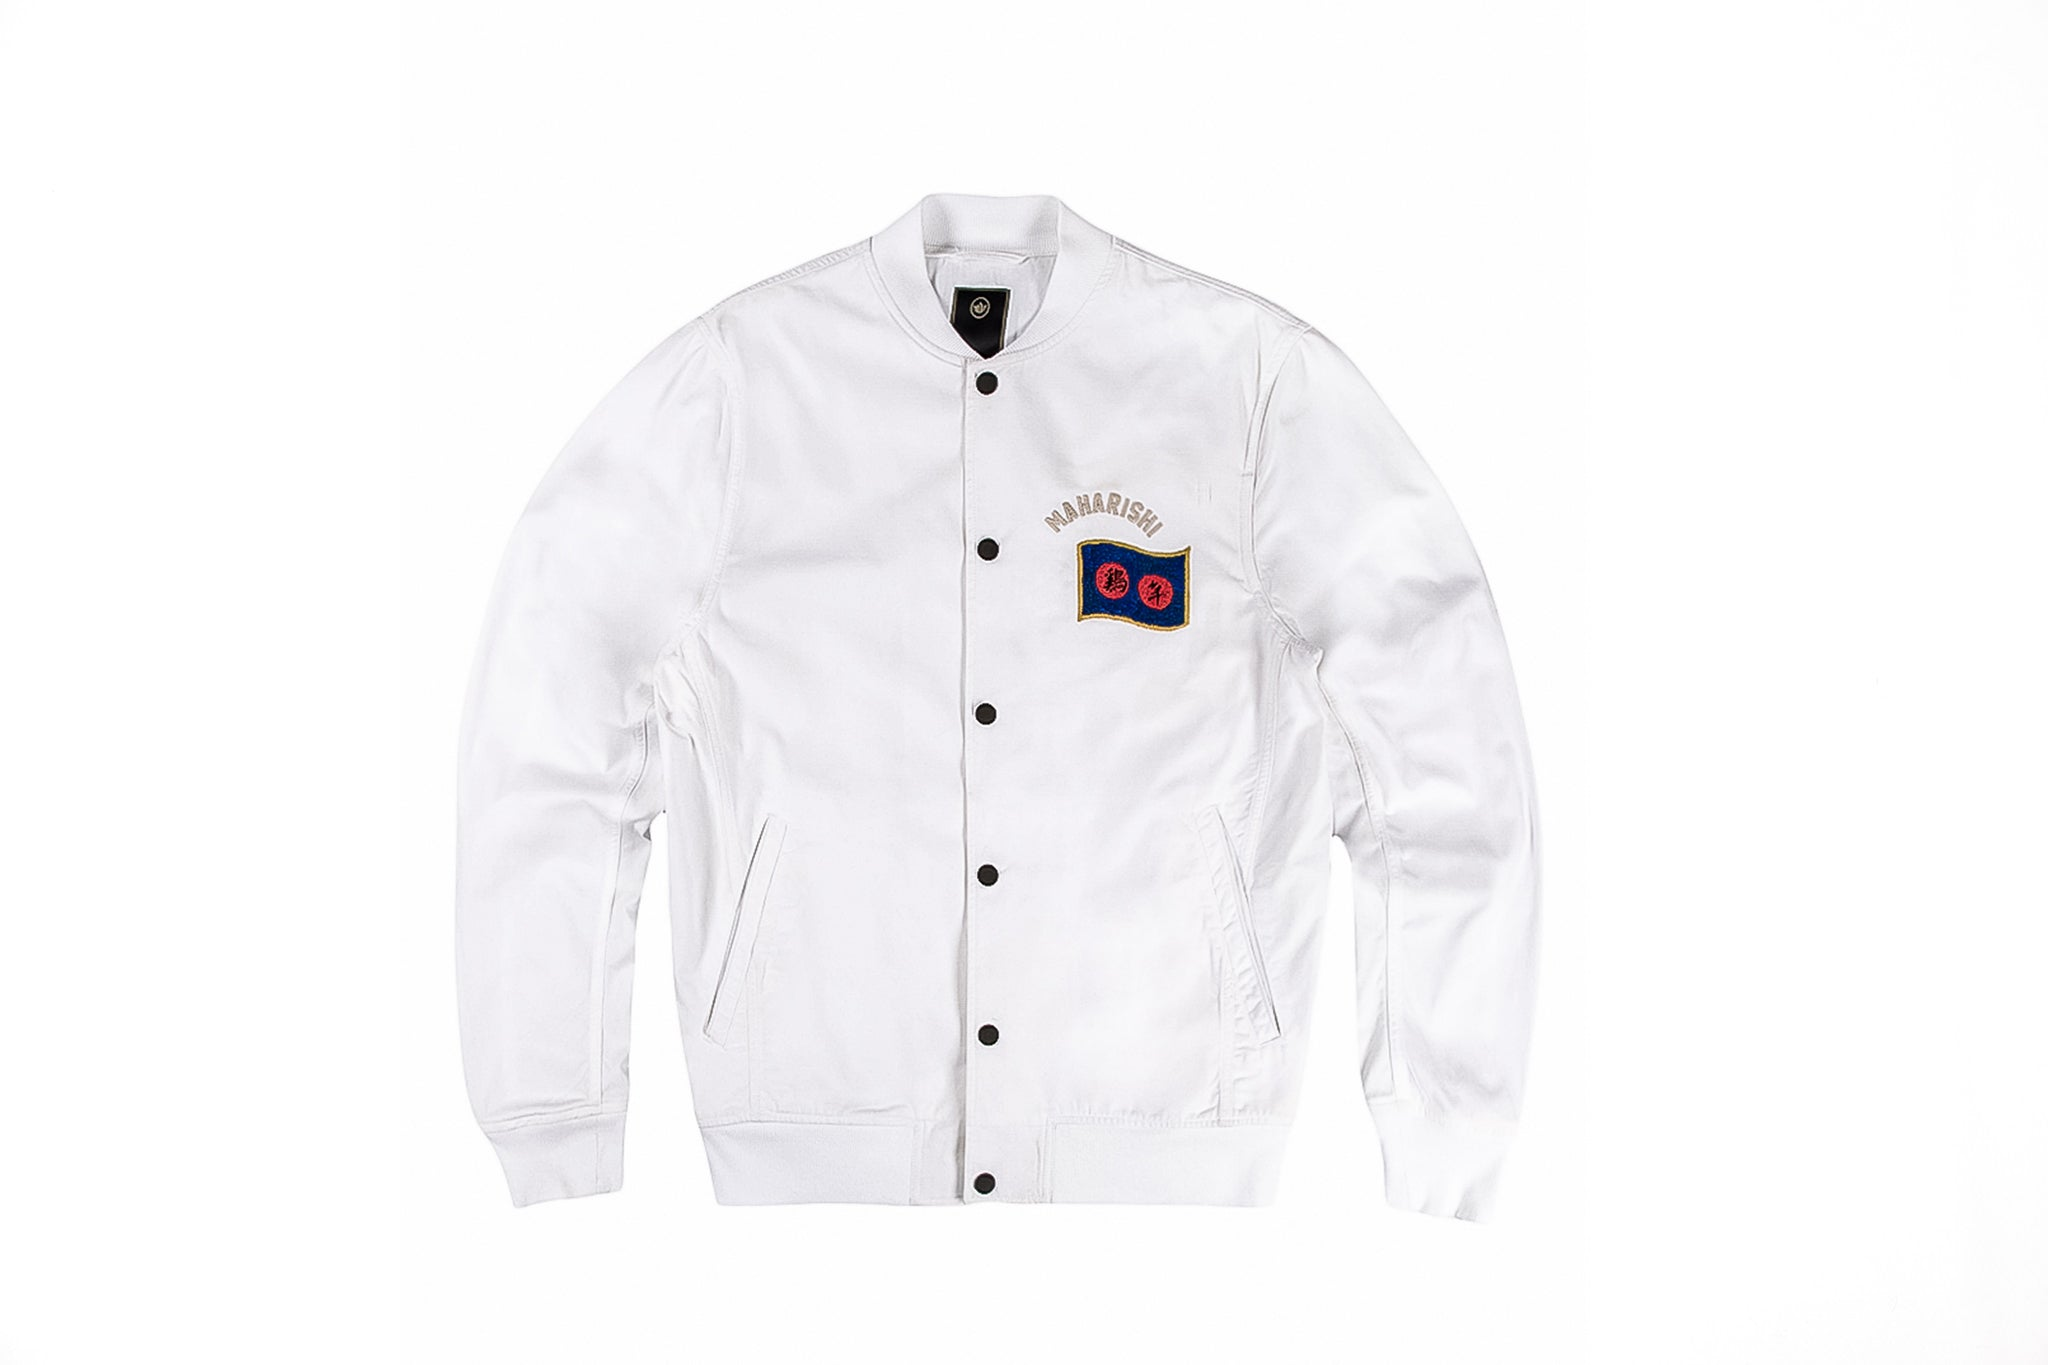 0ba0d8ef08ae42 maharishi-ss17-6120-year-of-the-rooster-jacket -white-211 front.jpg v 1503939000